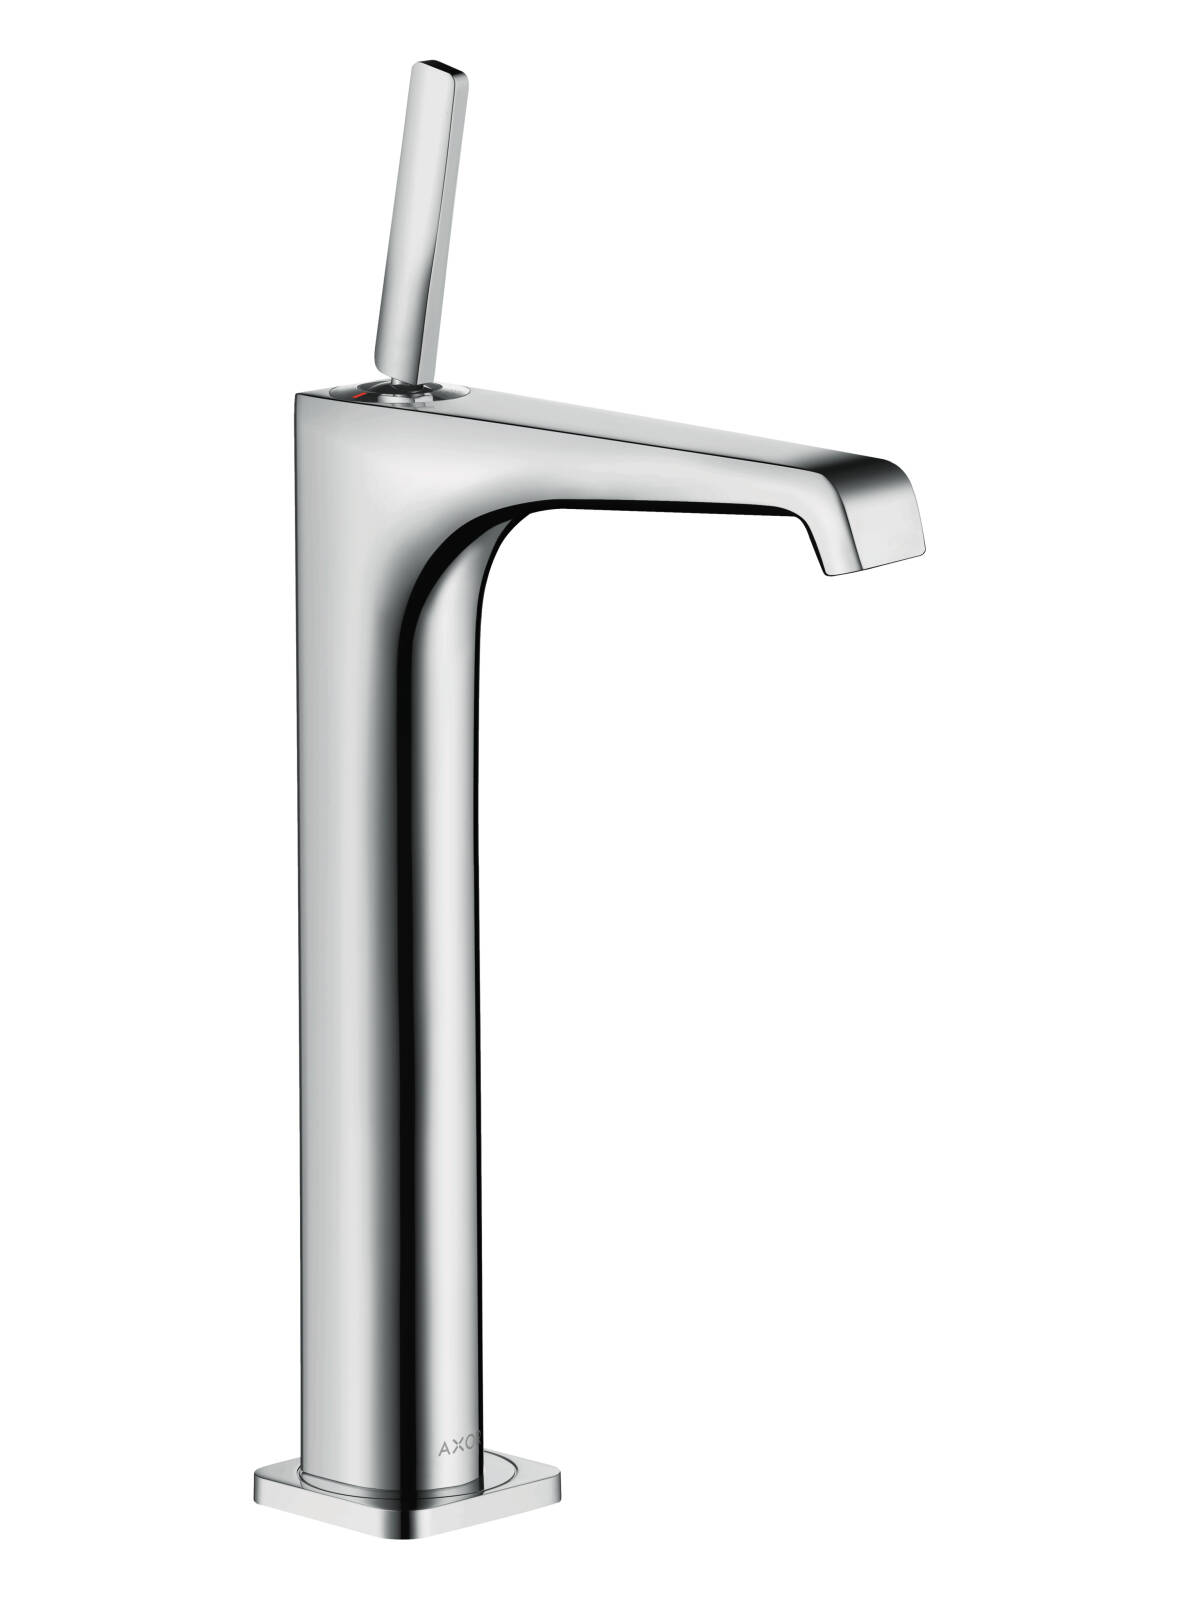 Single lever basin mixer 250 for wash bowls with waste set, Chrome, 36104000